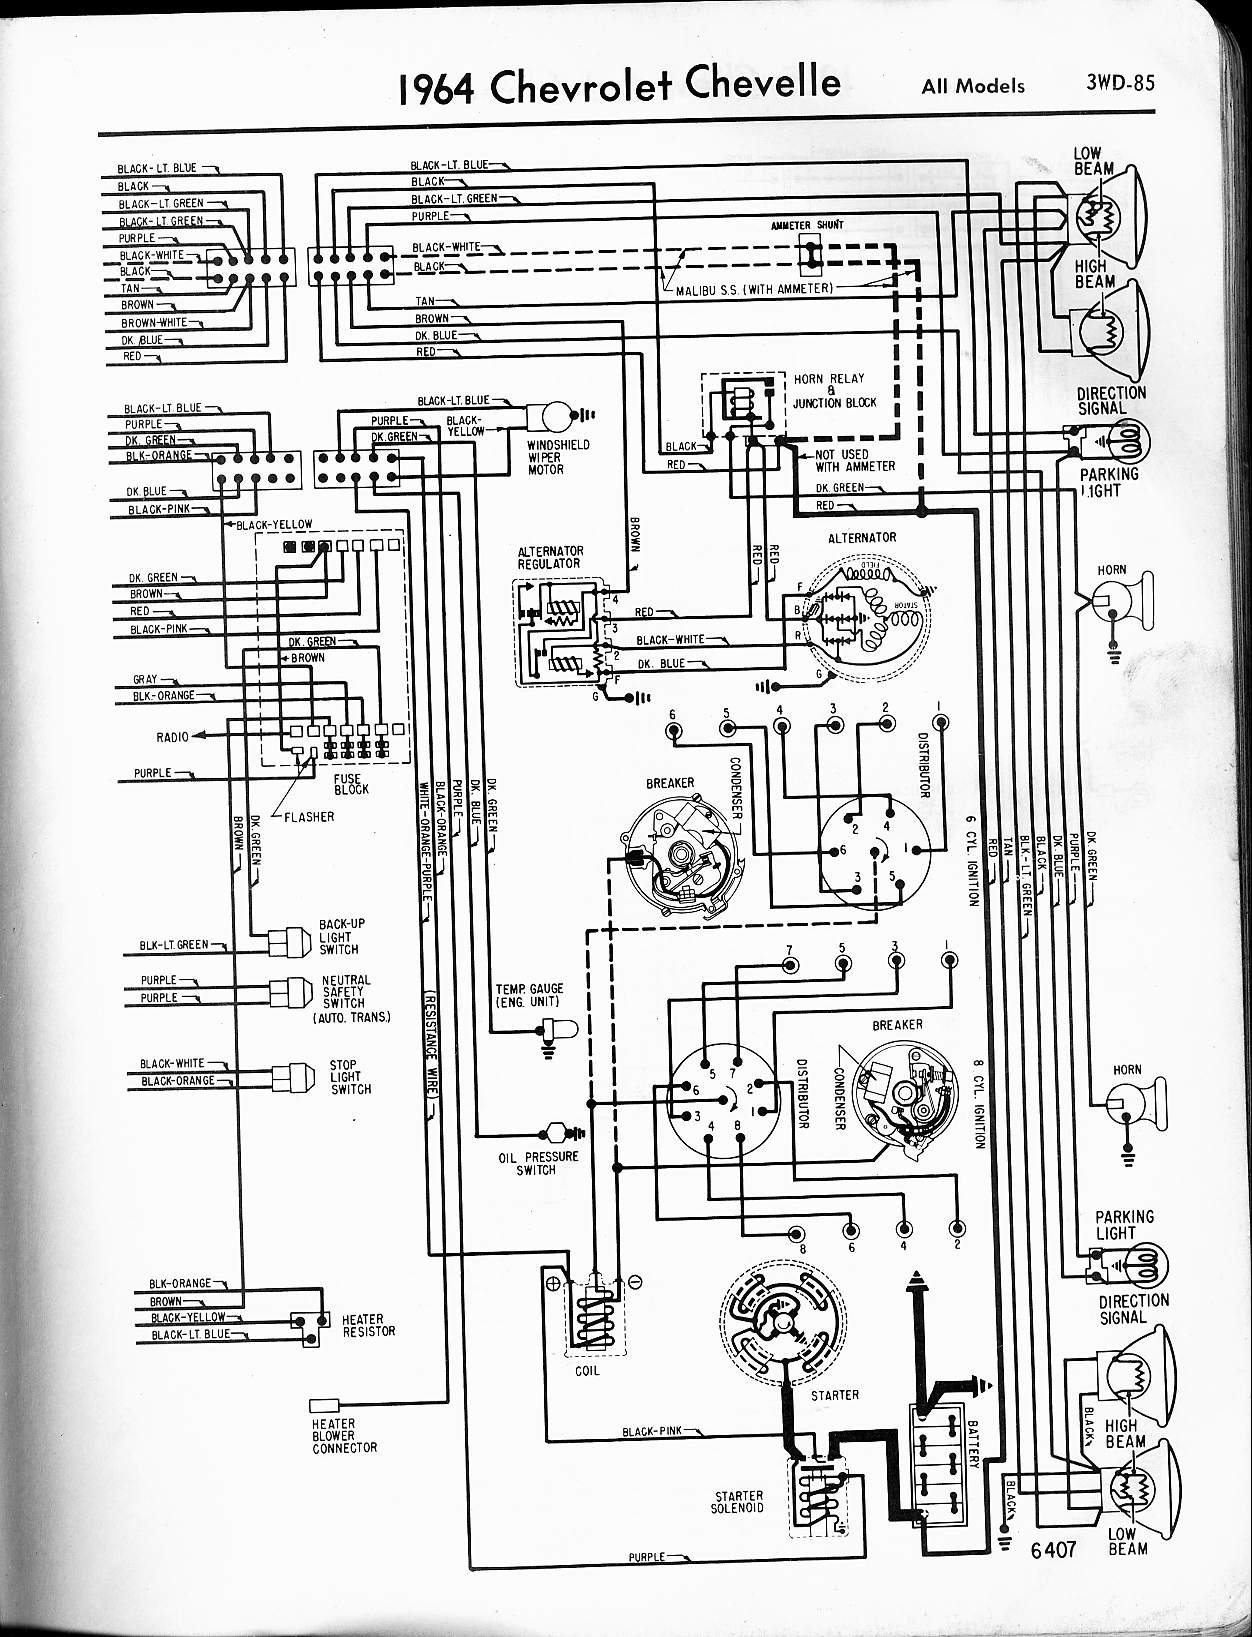 MWireChev64_3WD 085 chevy diagrams 1969 Chevy C10 Wiring-Diagram at honlapkeszites.co